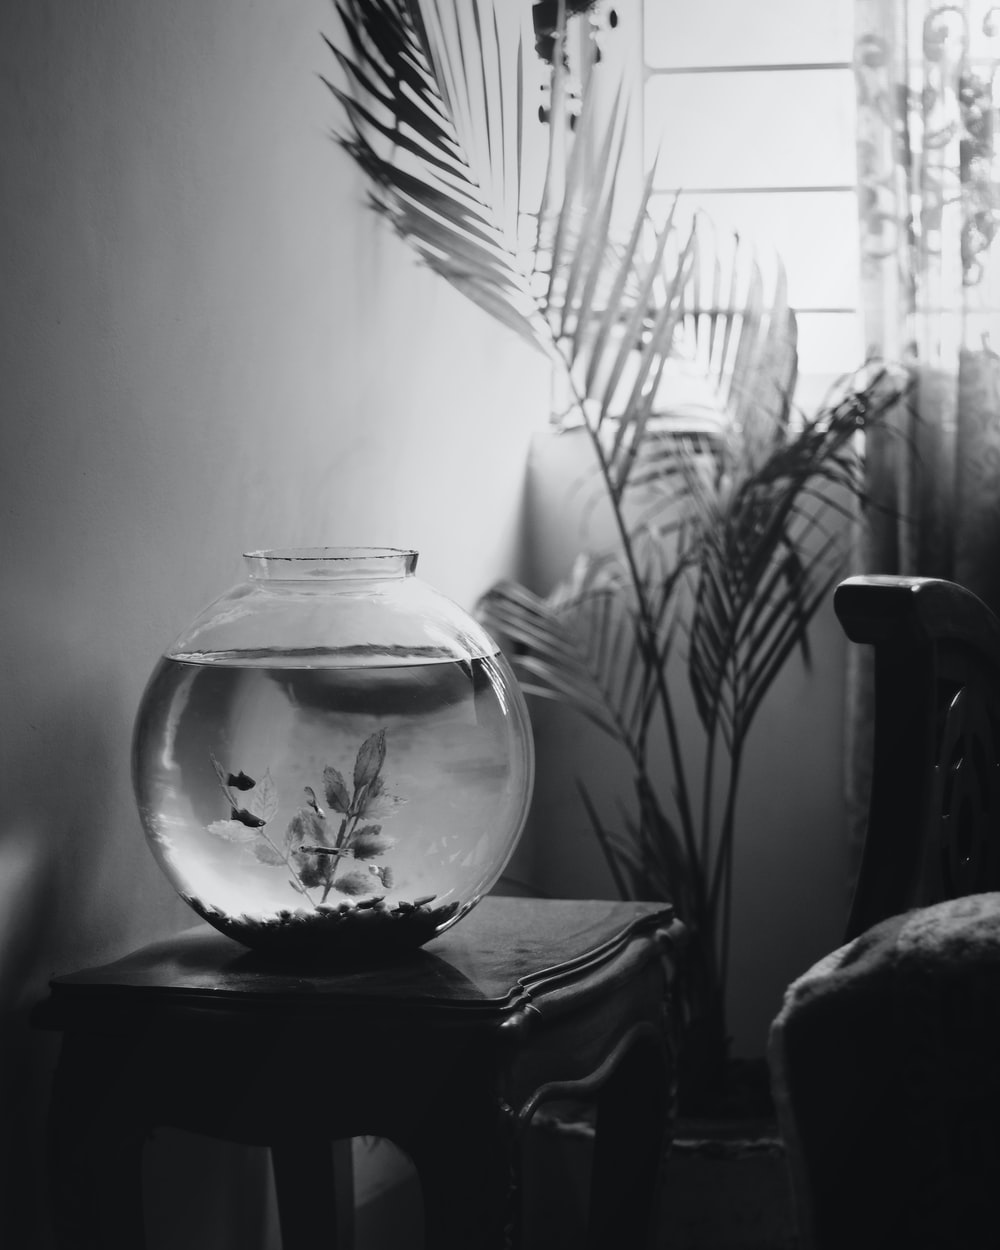 grayscale photo of glass fish bowl